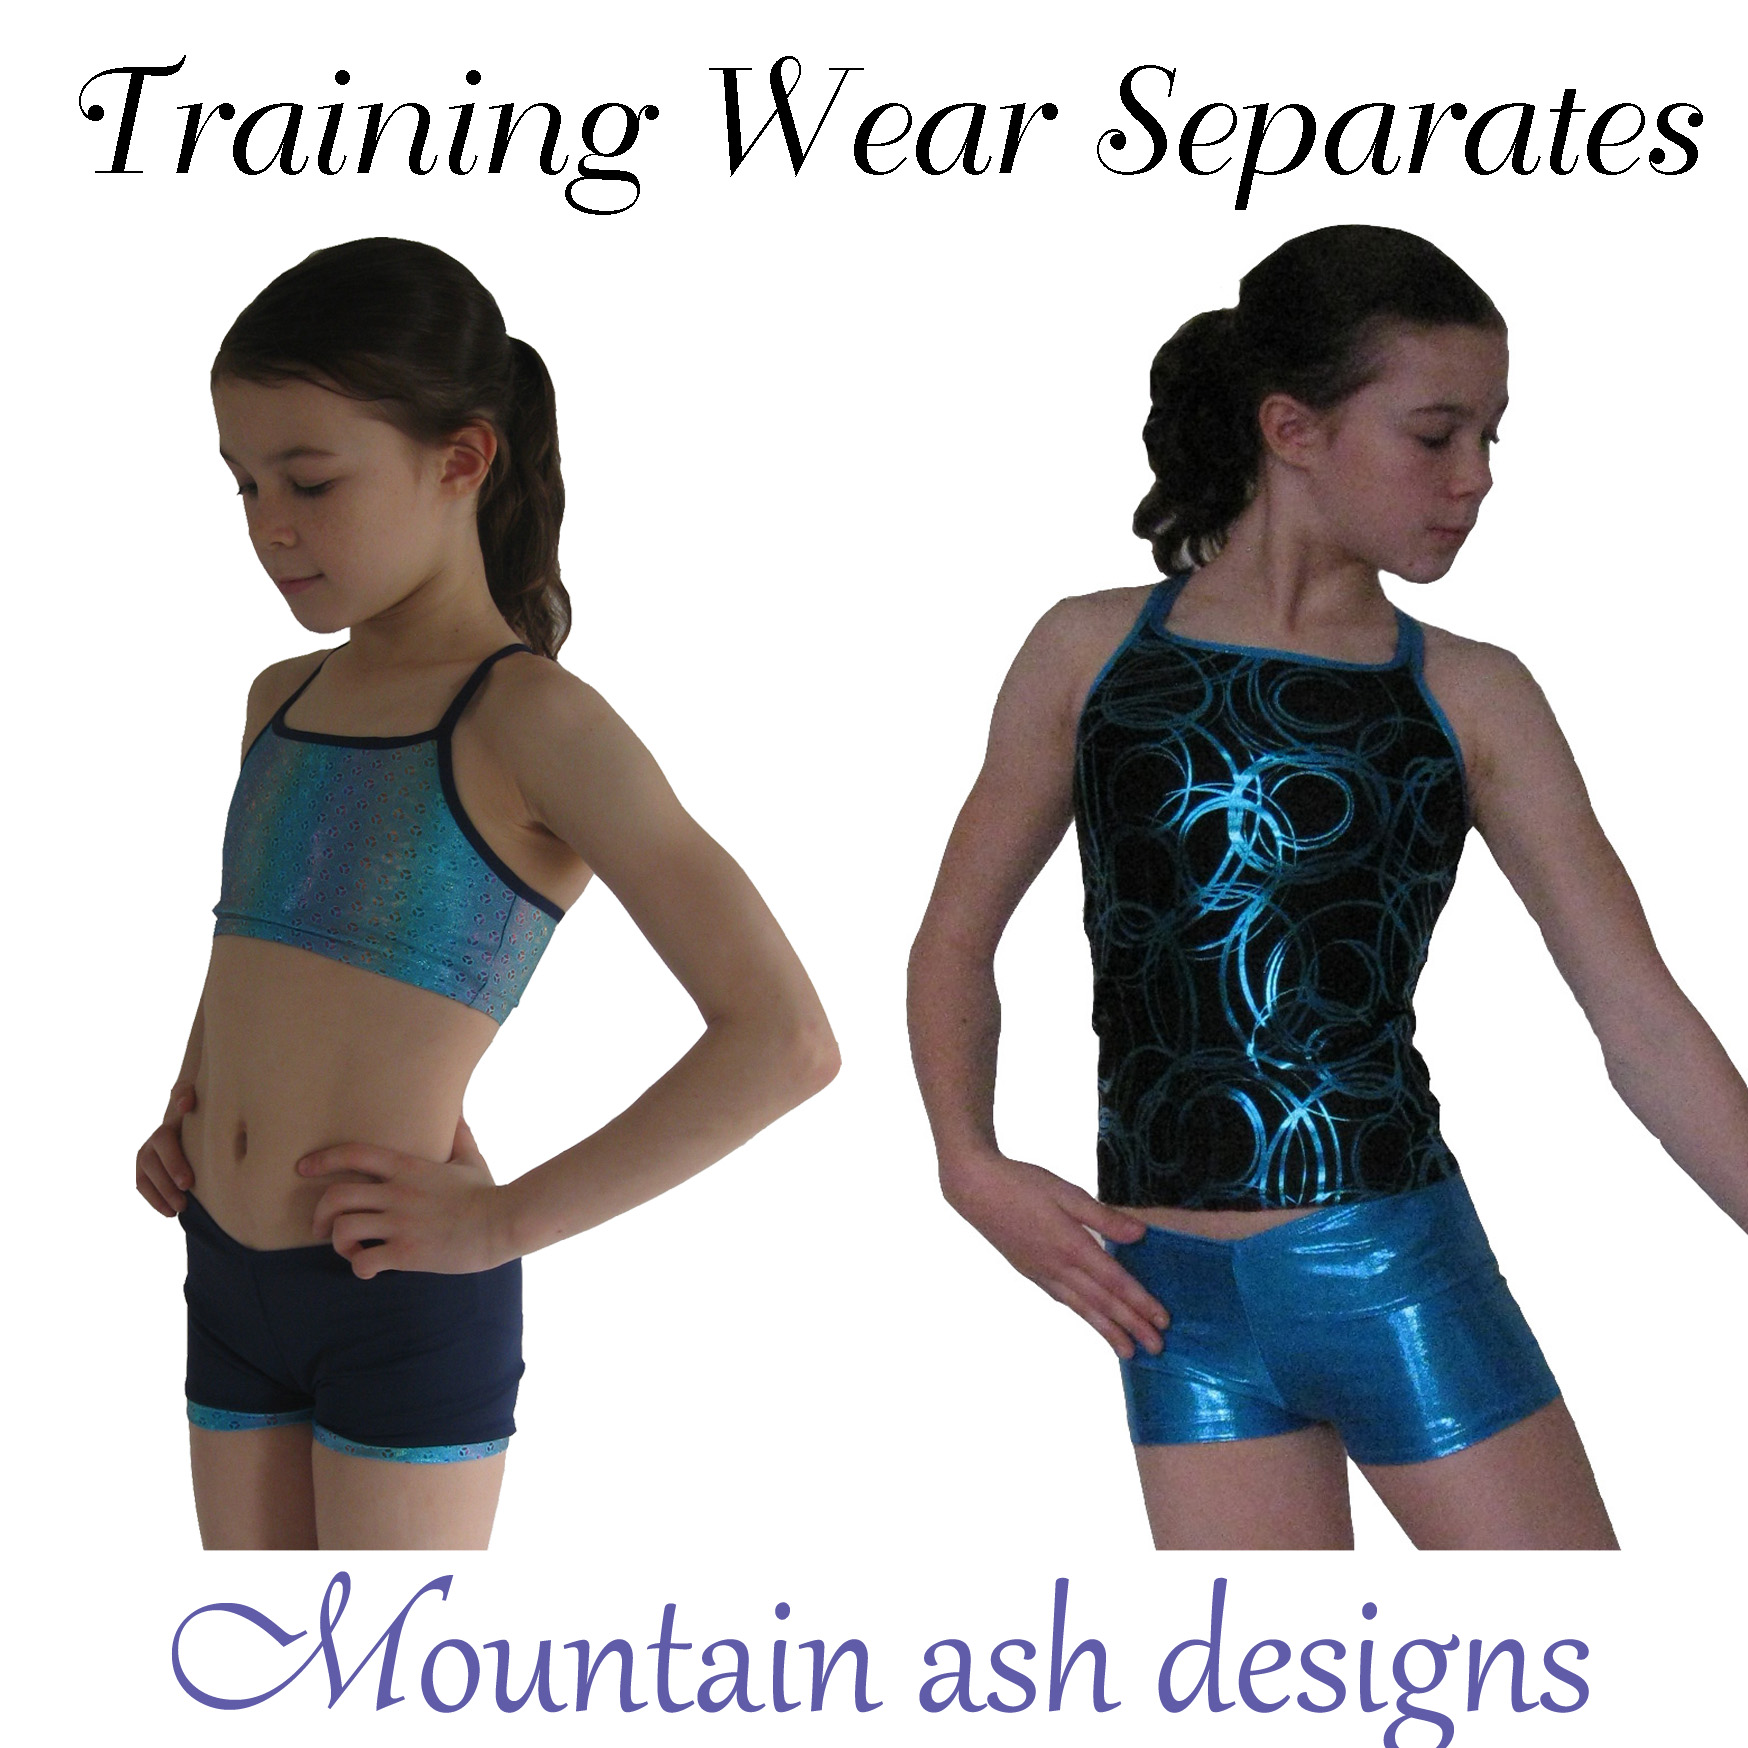 Training Wear Separates 1 Crop Top, Singlet & Shorts for Gymnastics & Dance in Girls Sizes 2-14